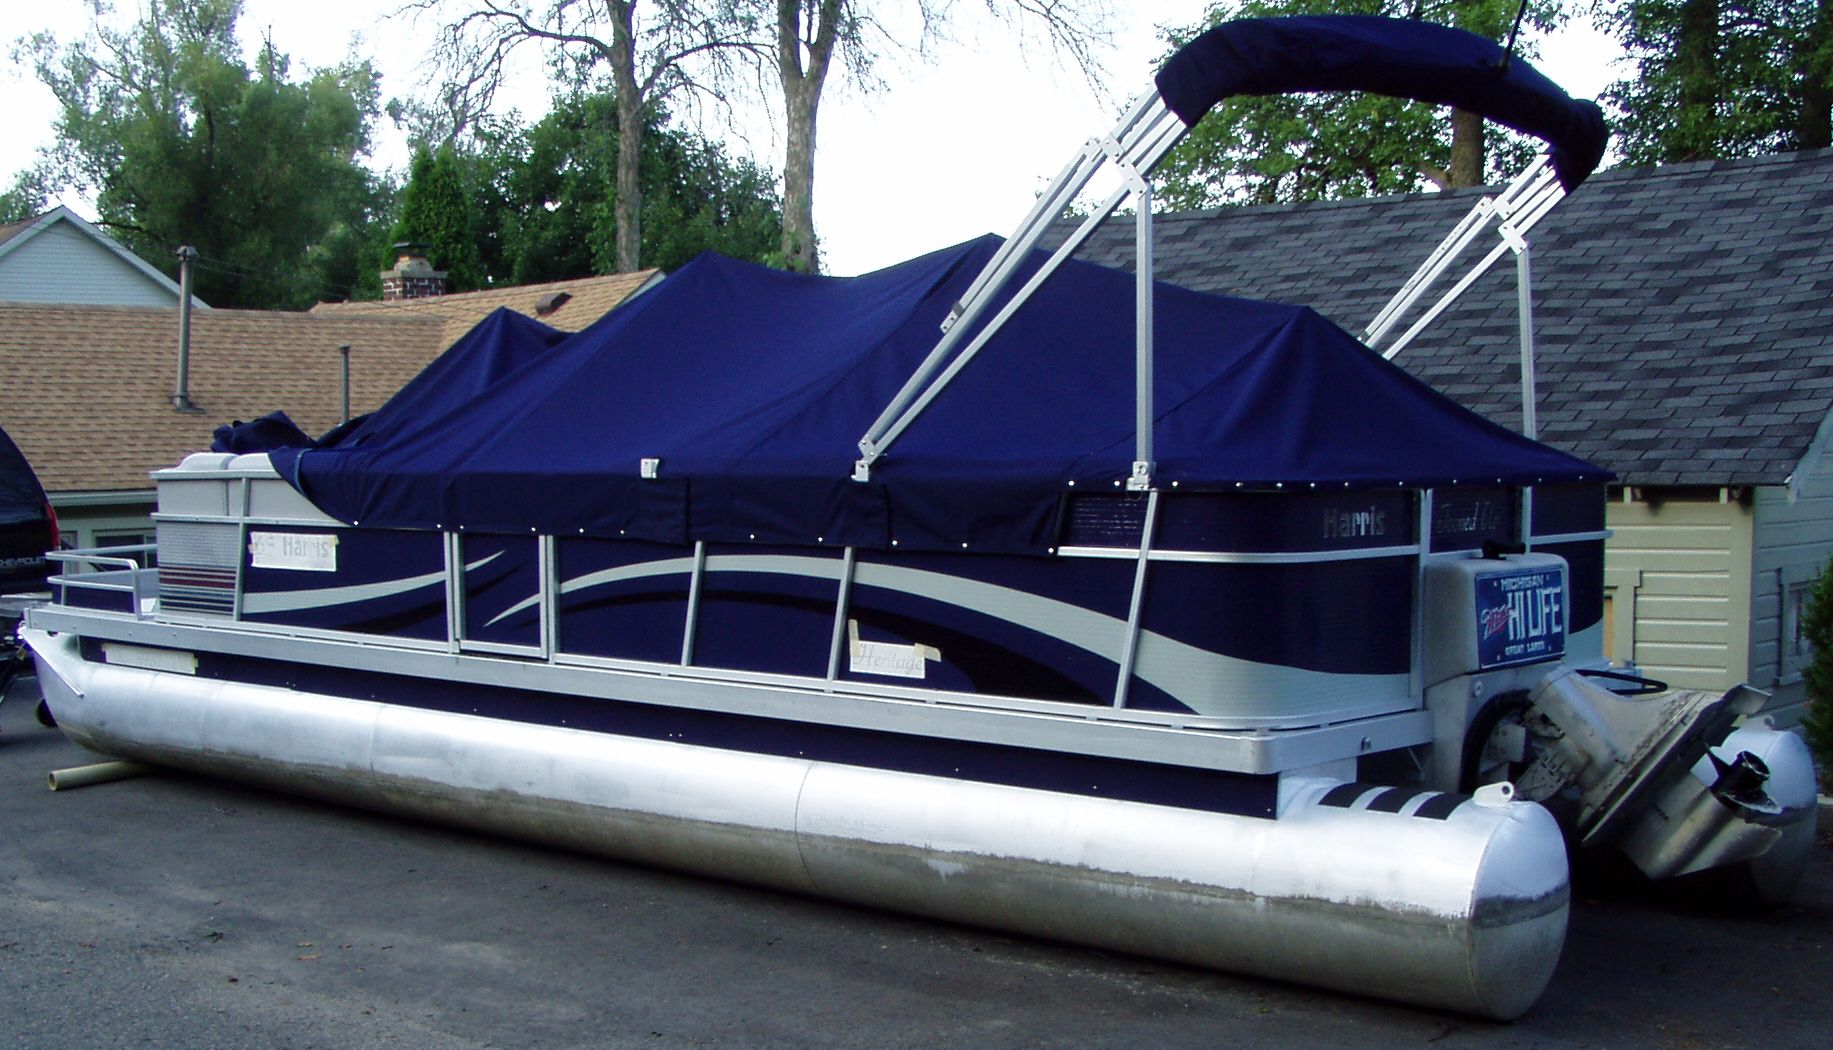 Pontoon Boat Wrap By Steel Skinz Graphics Wwwsteelskinzcom - Decals for pontoon boats